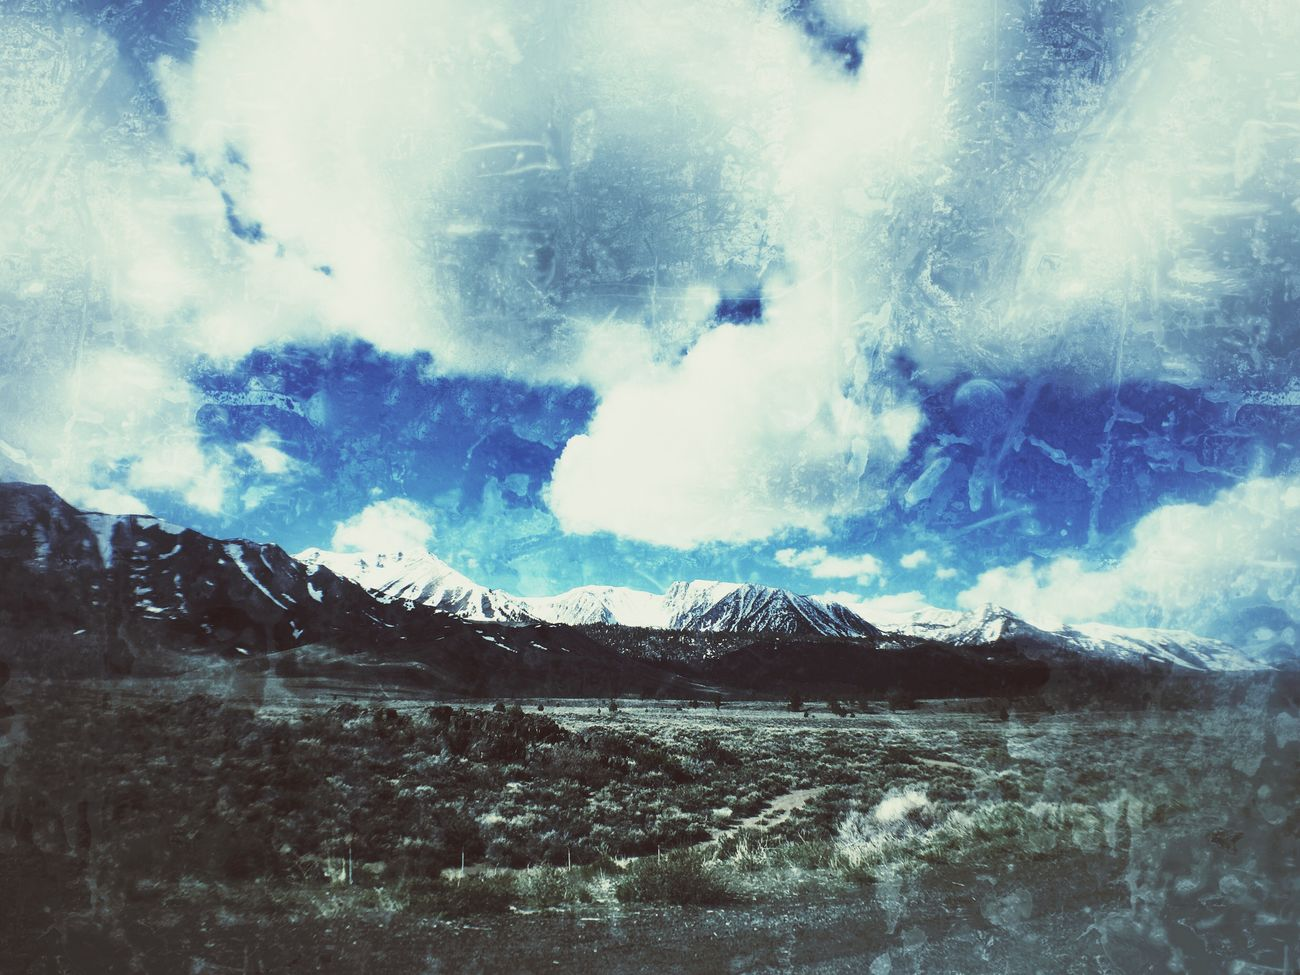 Grunge Mountains Check This Out Taking Photos From My Point Of View Enjoying Life Driving Home Random Landscape Landscape Photography